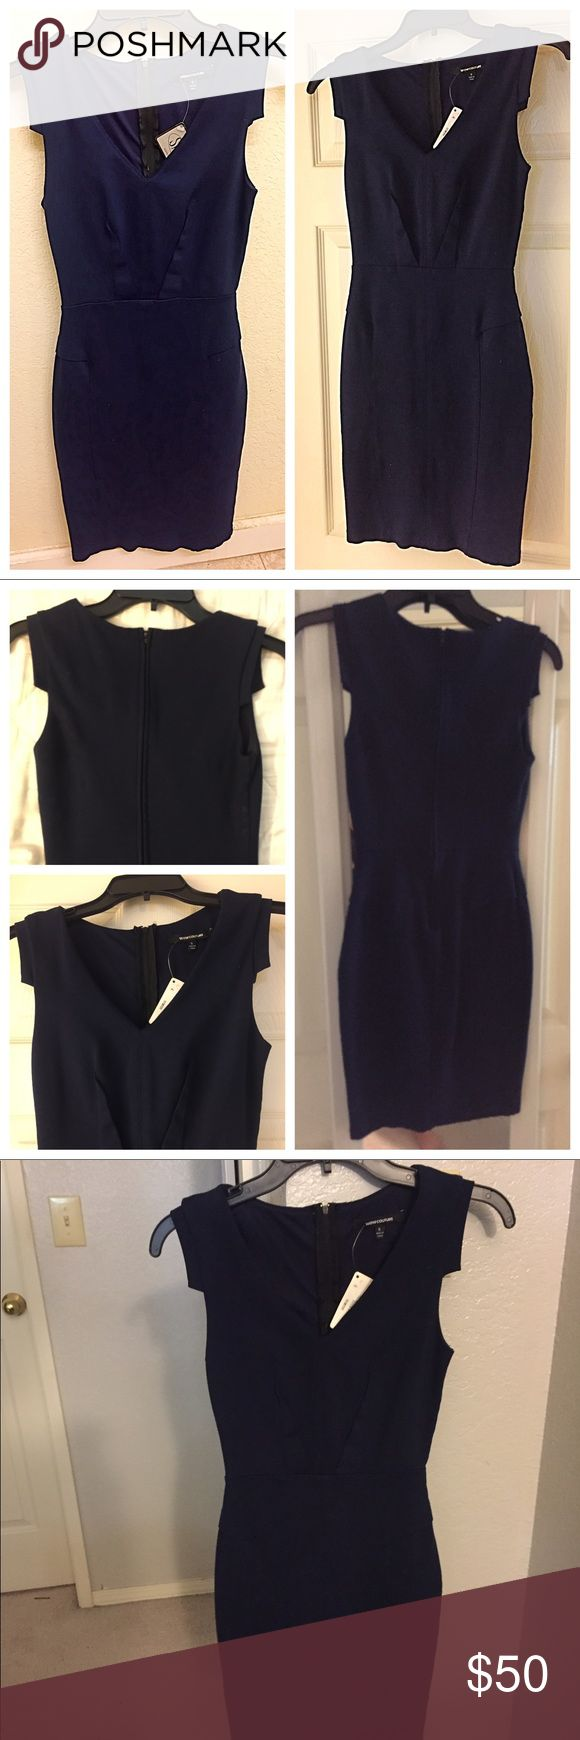 Navy Cap Sleeve V Neck Bodycon Shift Dress S Dark Navy Blue. Super Stretchy and form fitting! Midi length, v neck and cap sleeves. Perfect for work or going out! WOW couture Dresses Midi